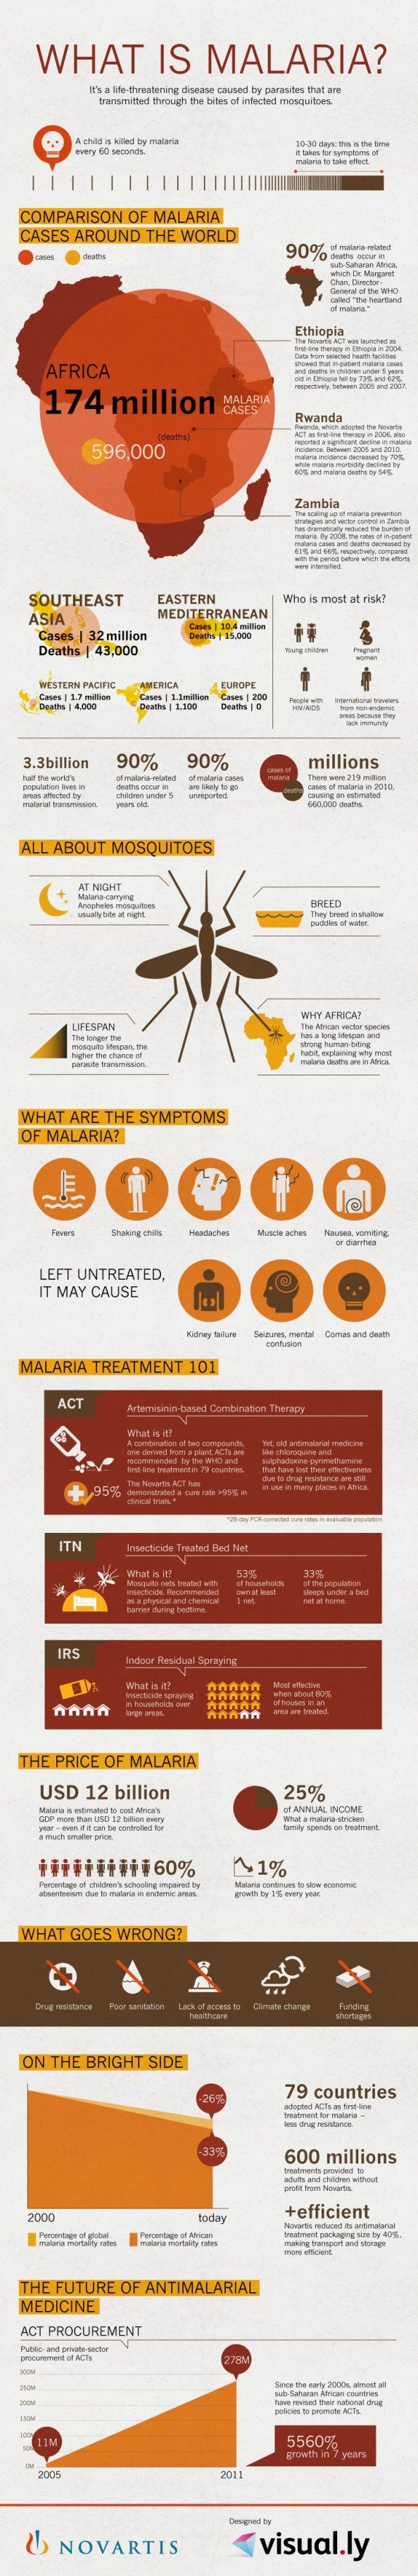 the explanation of the disease malaria Infectious diseases are transmitted from person to person by direct or indirect contact certain types of viruses, bacteria, parasites, and fungi can all cause infectious disease malaria, measles .